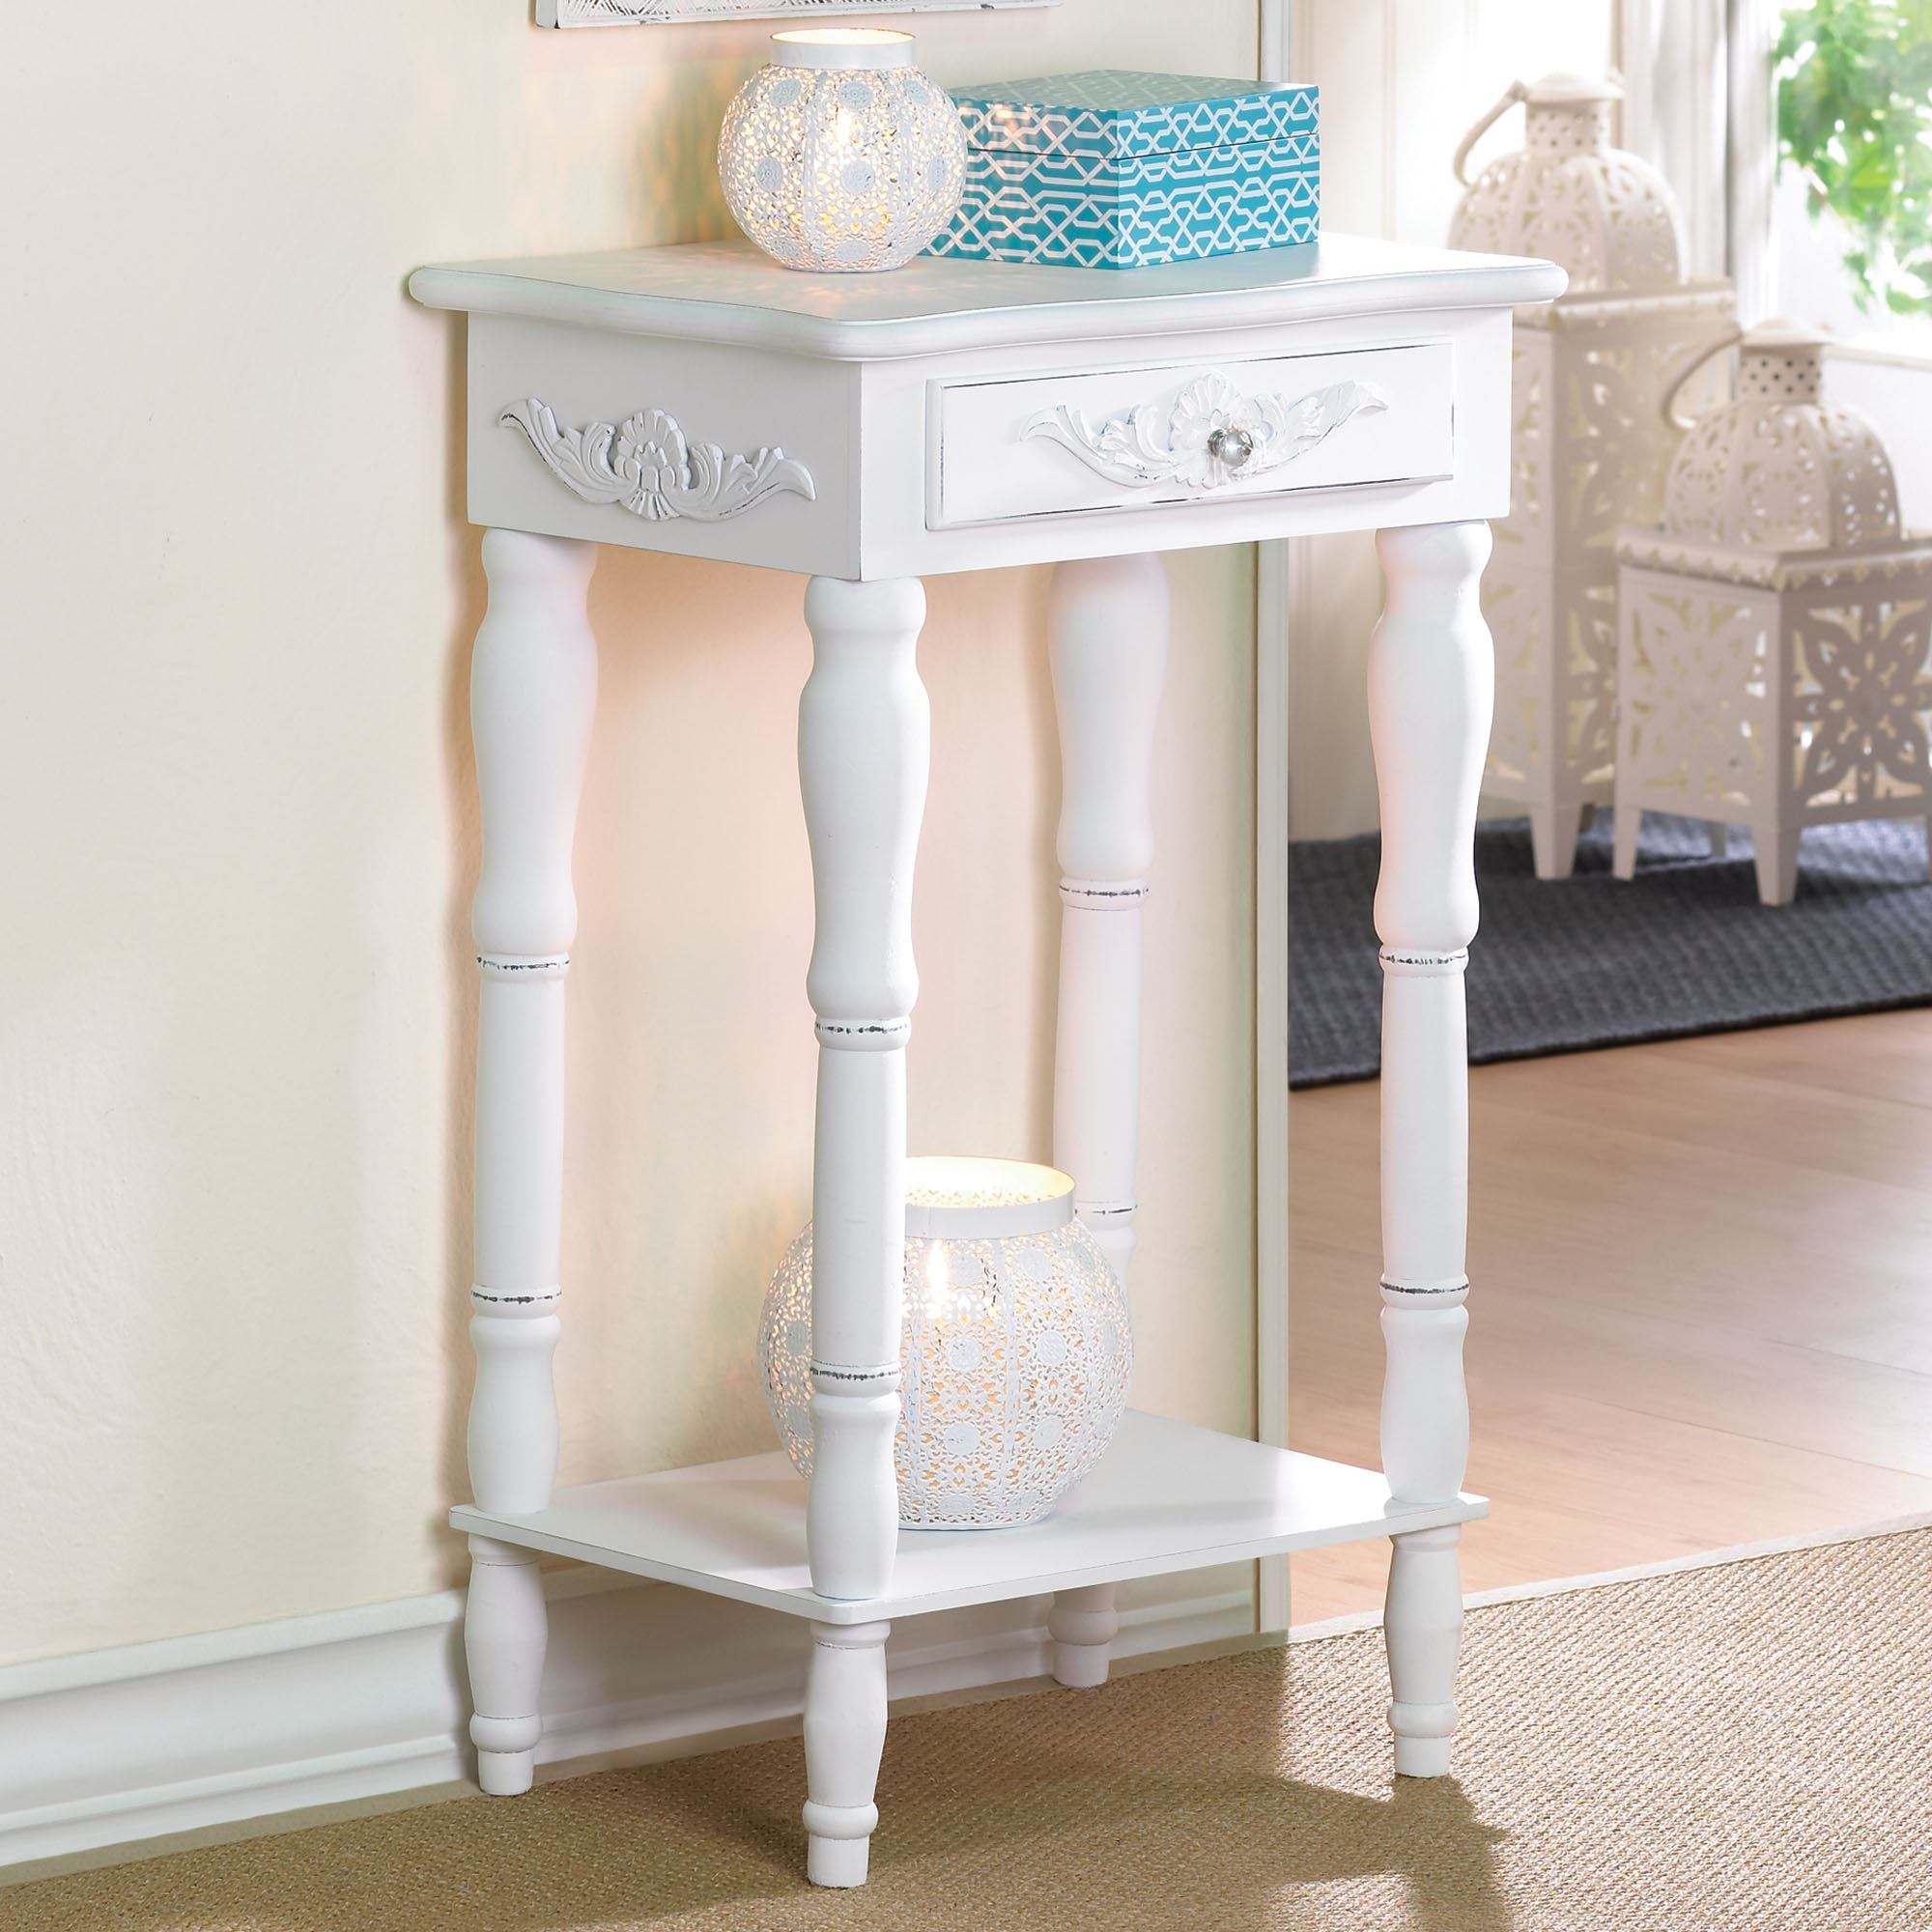 cosenza antique white accent table with drawer round touch zoom trunk bedside large garden umbrellas clear crystal lamp ikea storage unit inches high small bar height decorative